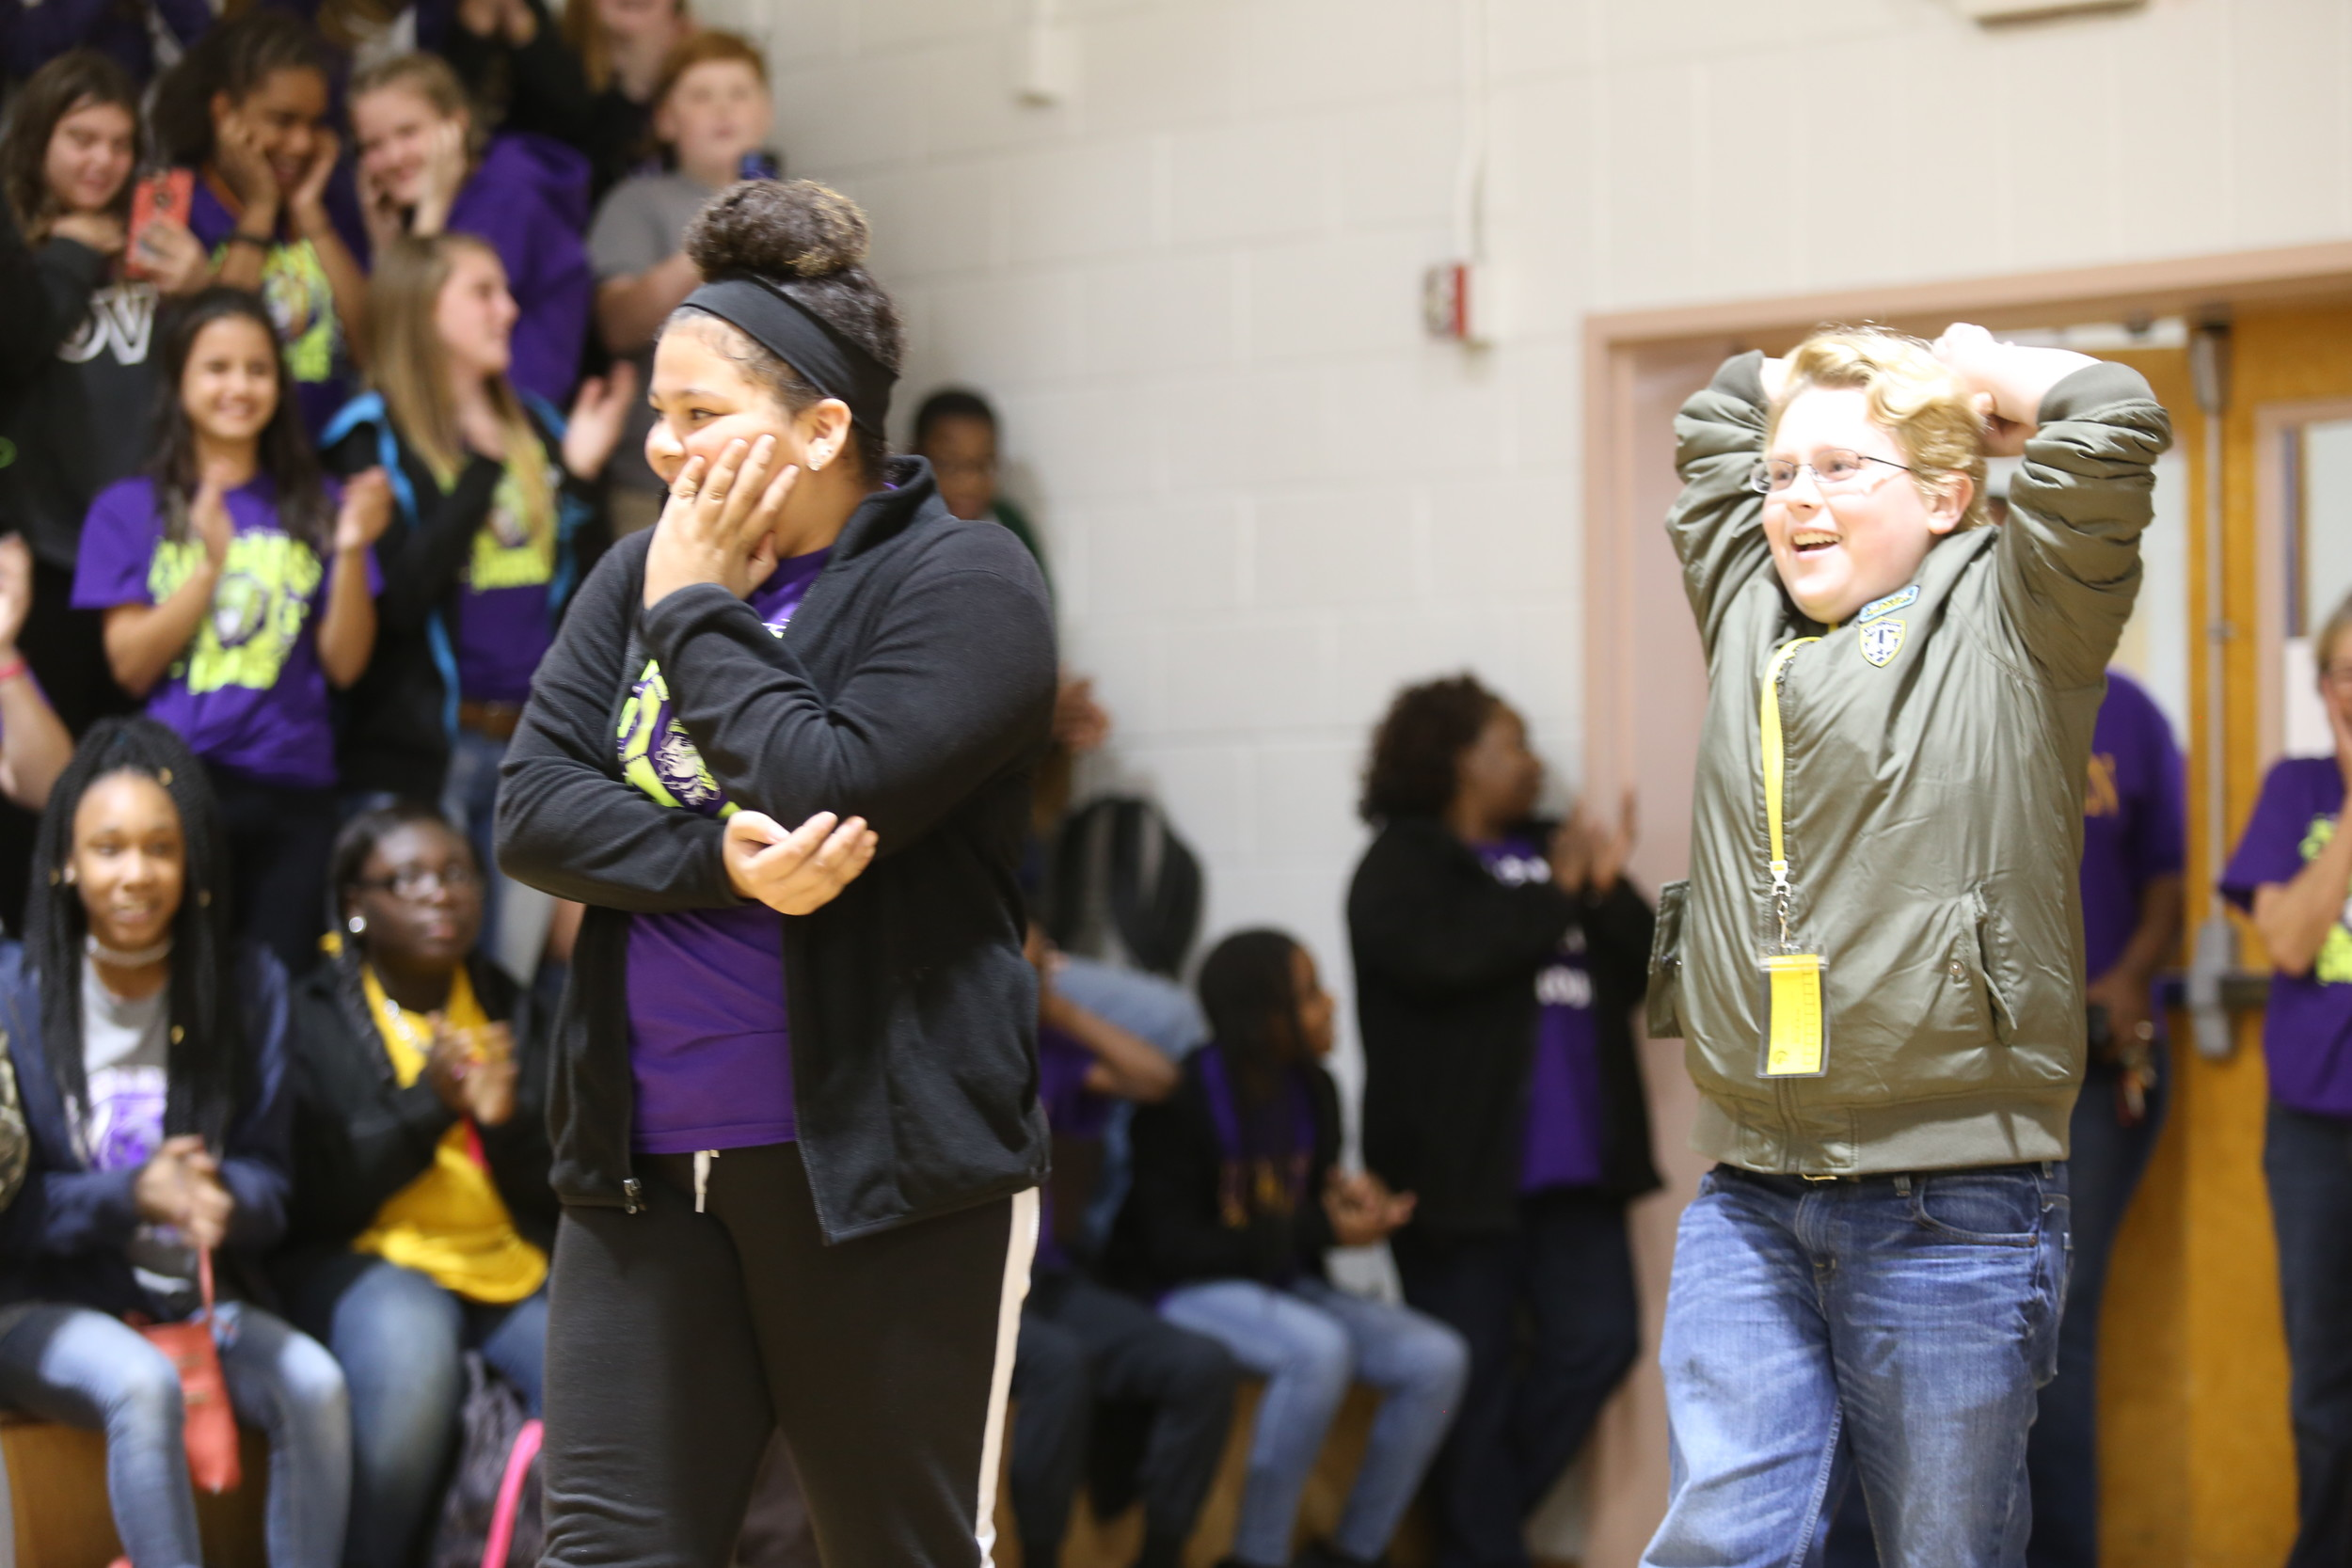 BRUCE MILLS / THE SUMTER ITEM Furman Middle School seventh-graders Taylor Gooden, left, and Quinn Welsh look stunned Friday as they enter the school's gym for a surprise sendoff celebration. The two are auditioning today in Savannah, Georgia, for America's Got Talent.